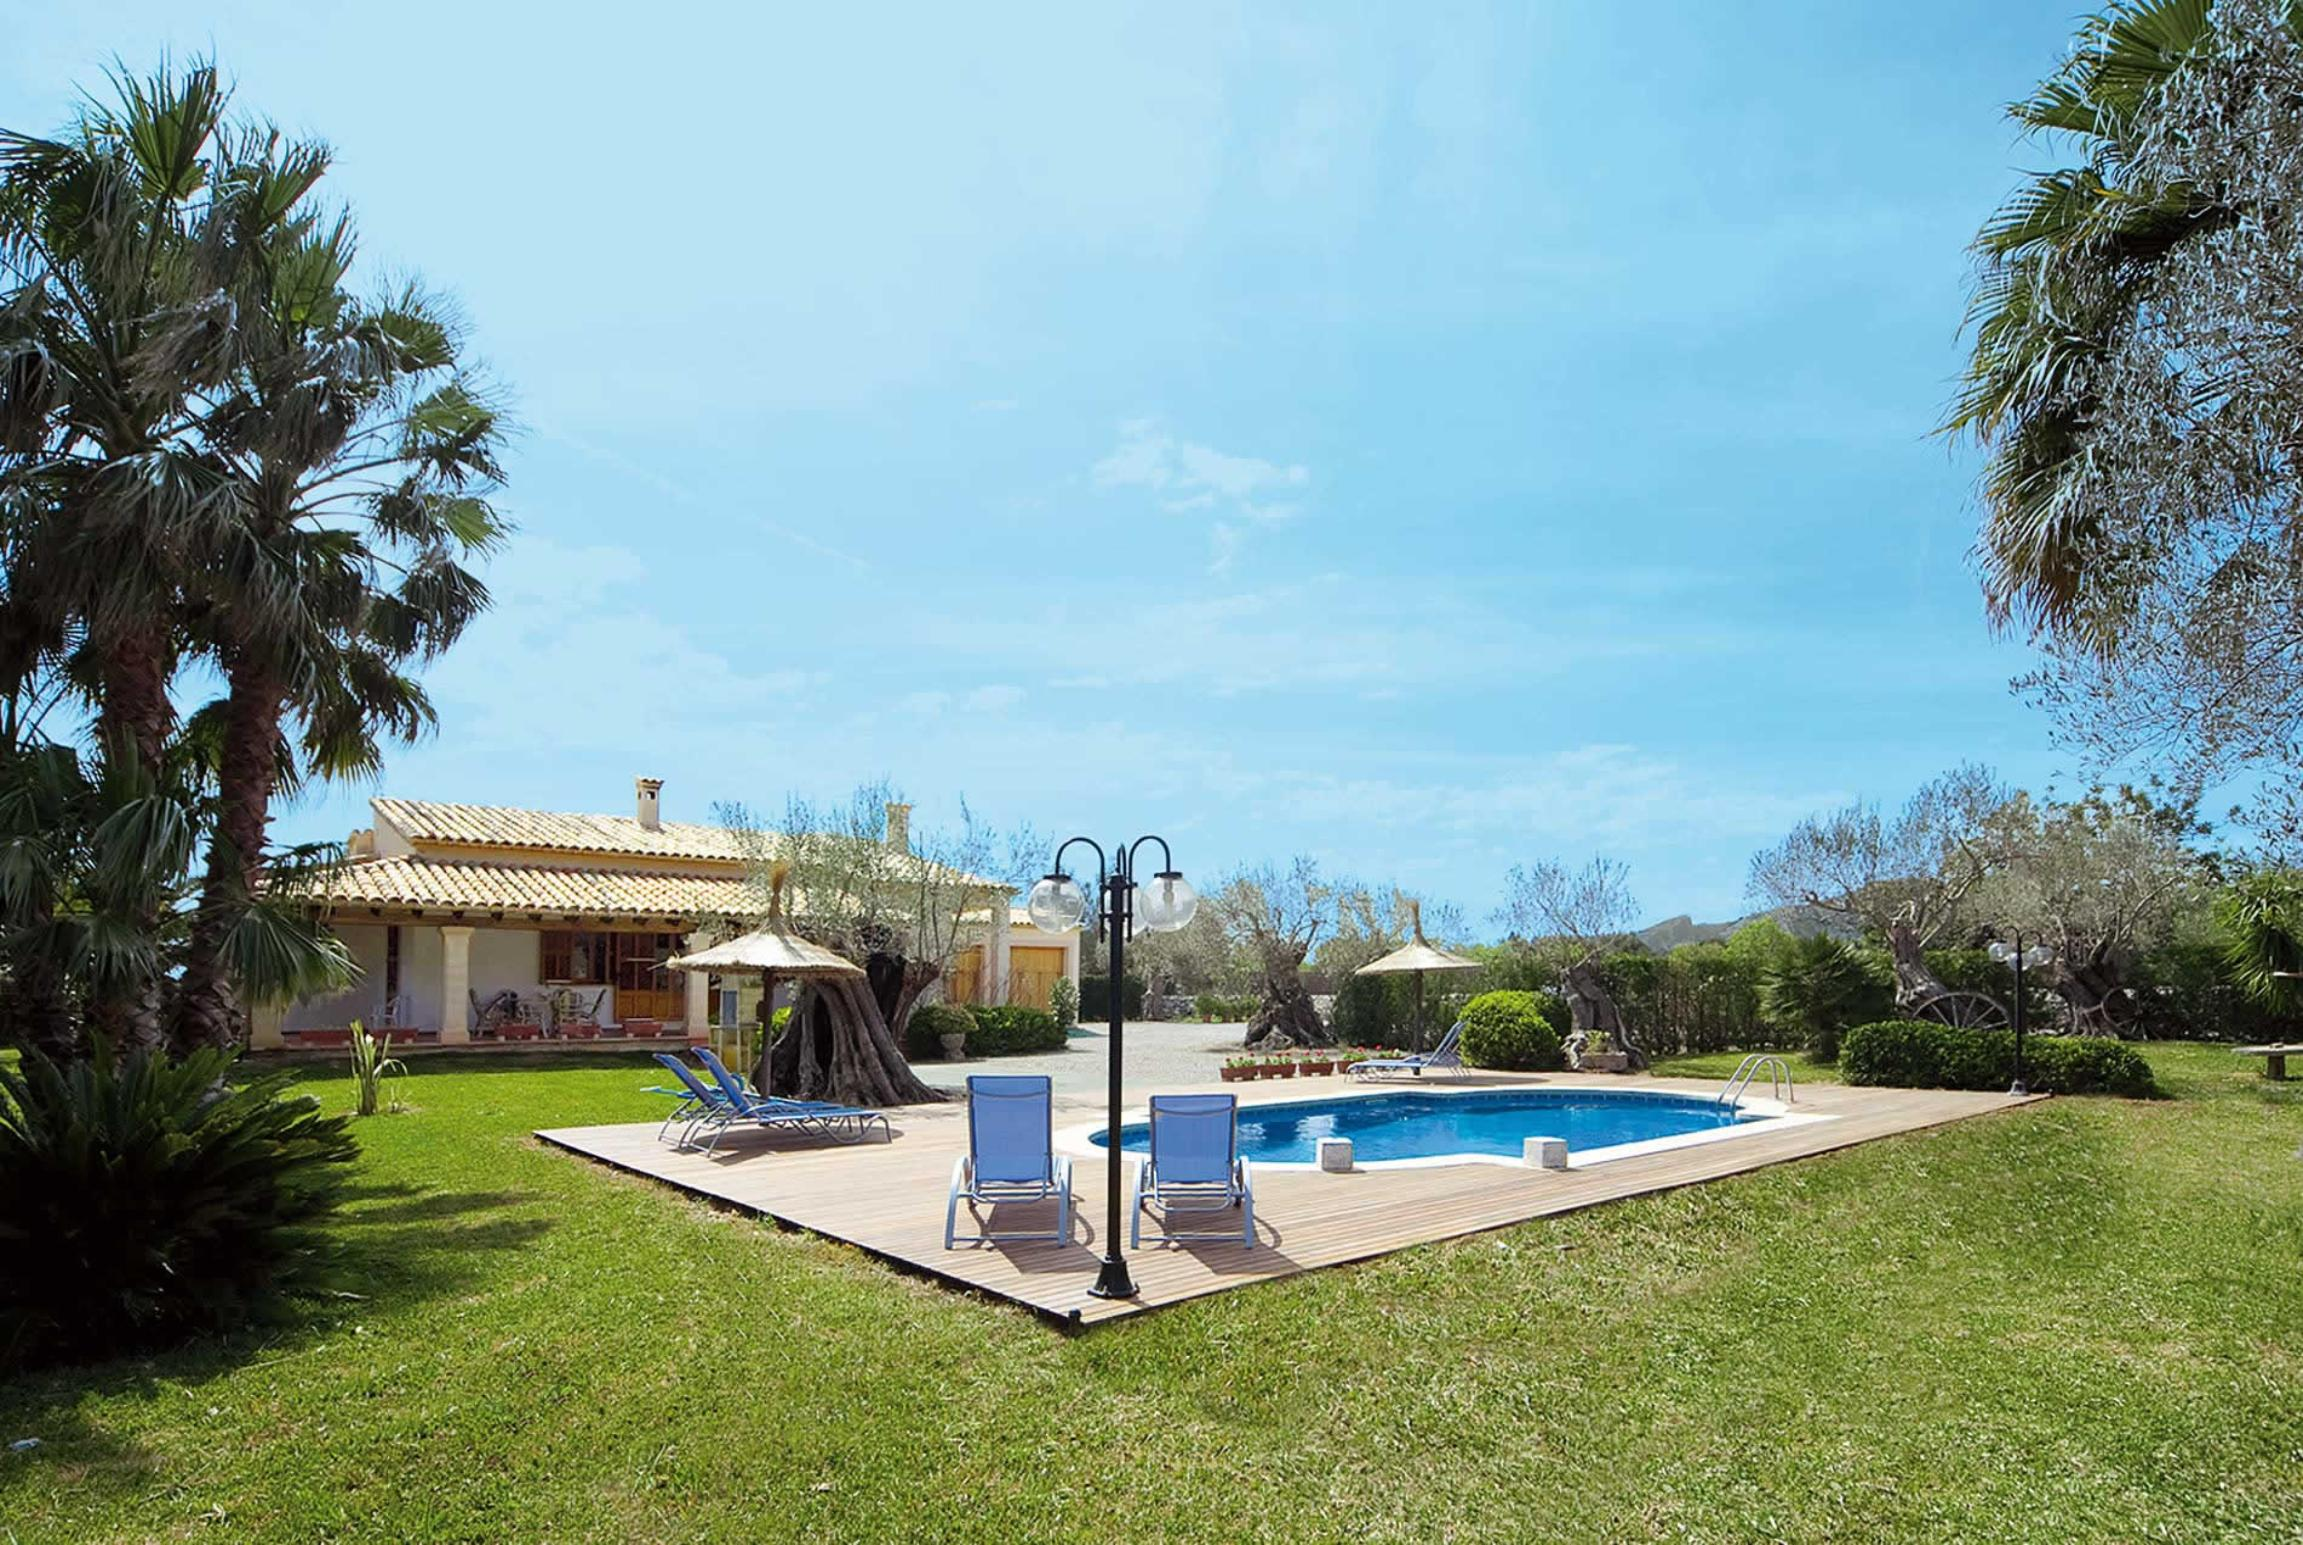 Read more about Mimas villa